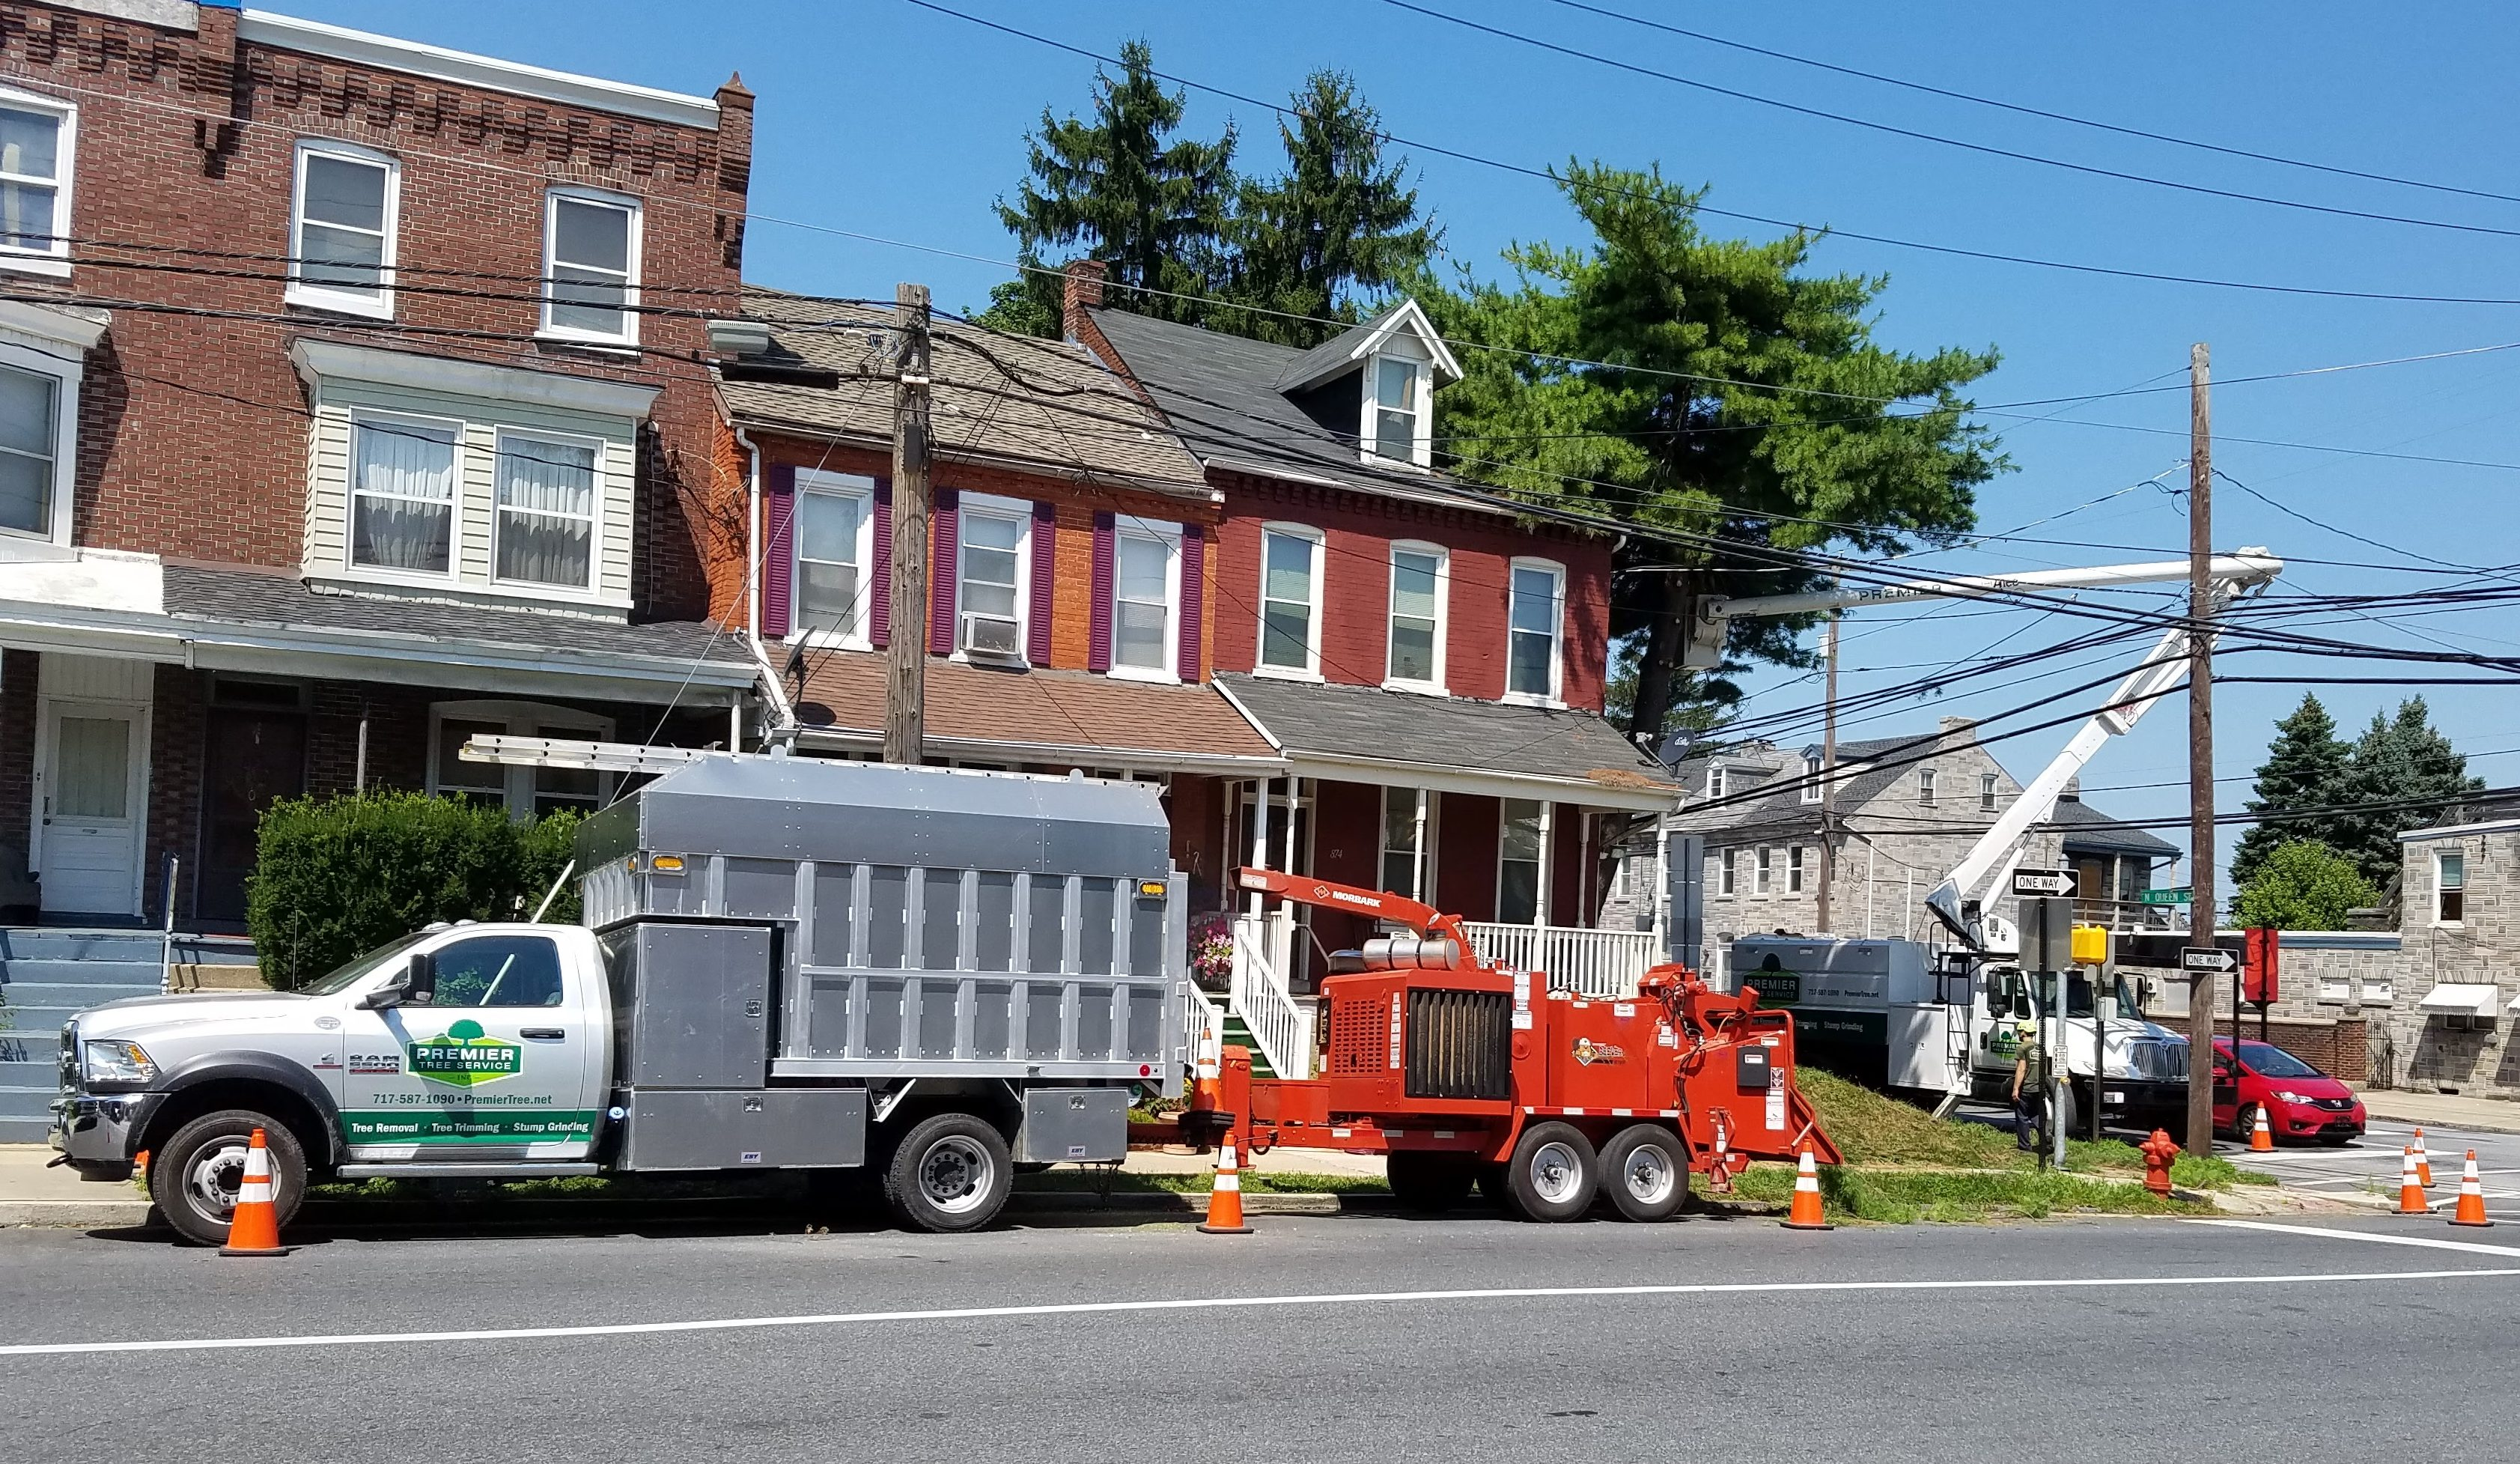 We have the equipment to safely trim or remove trees in towns. Buildings and powerlines? No problem.